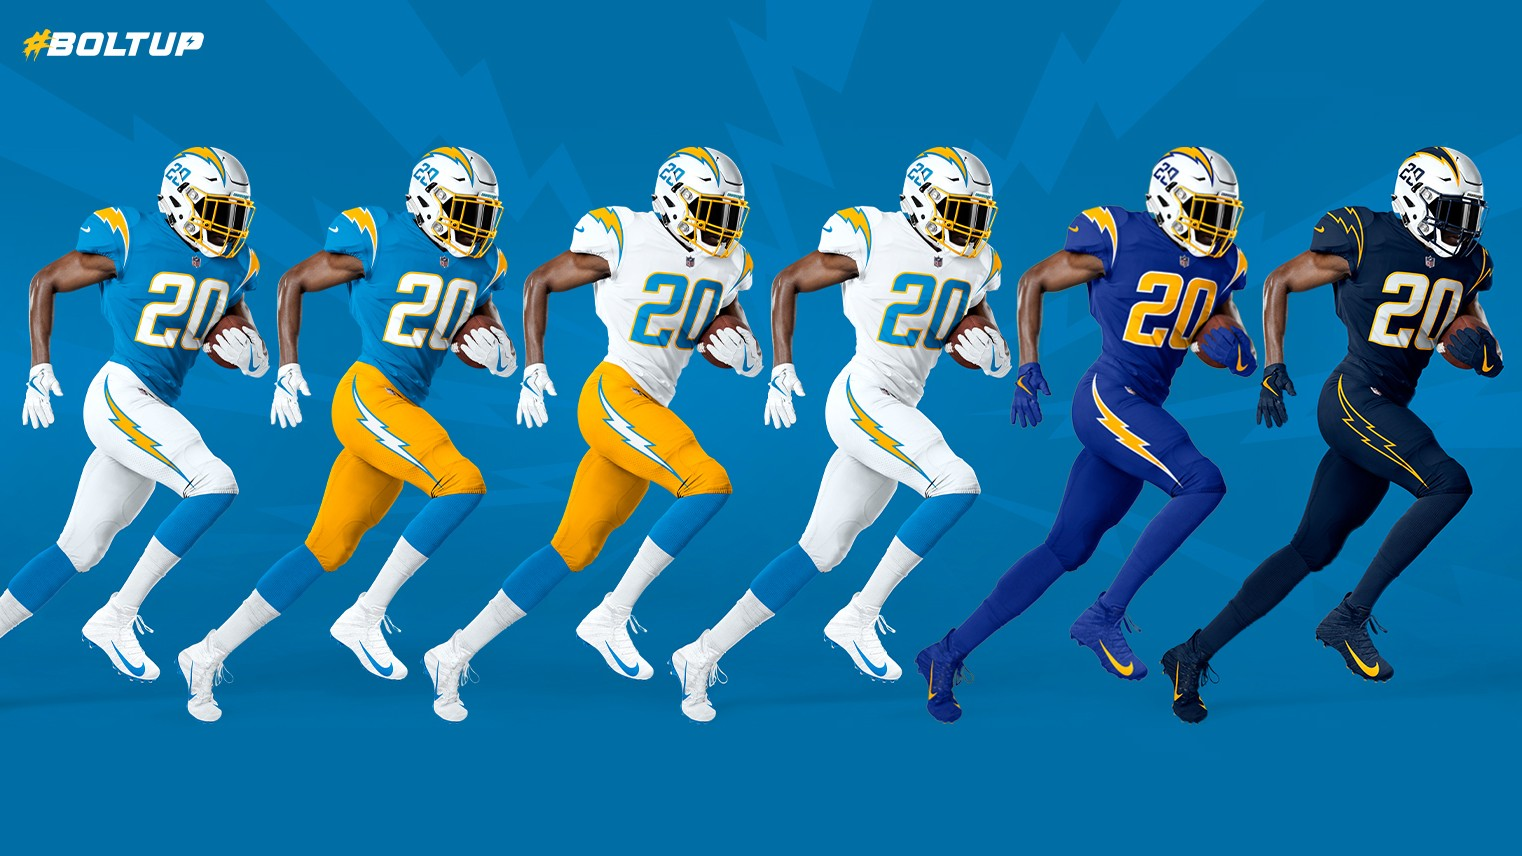 chargers uniforms chargers ftr 042120 1no0ld5ag4kdm1czafmagbe0bz